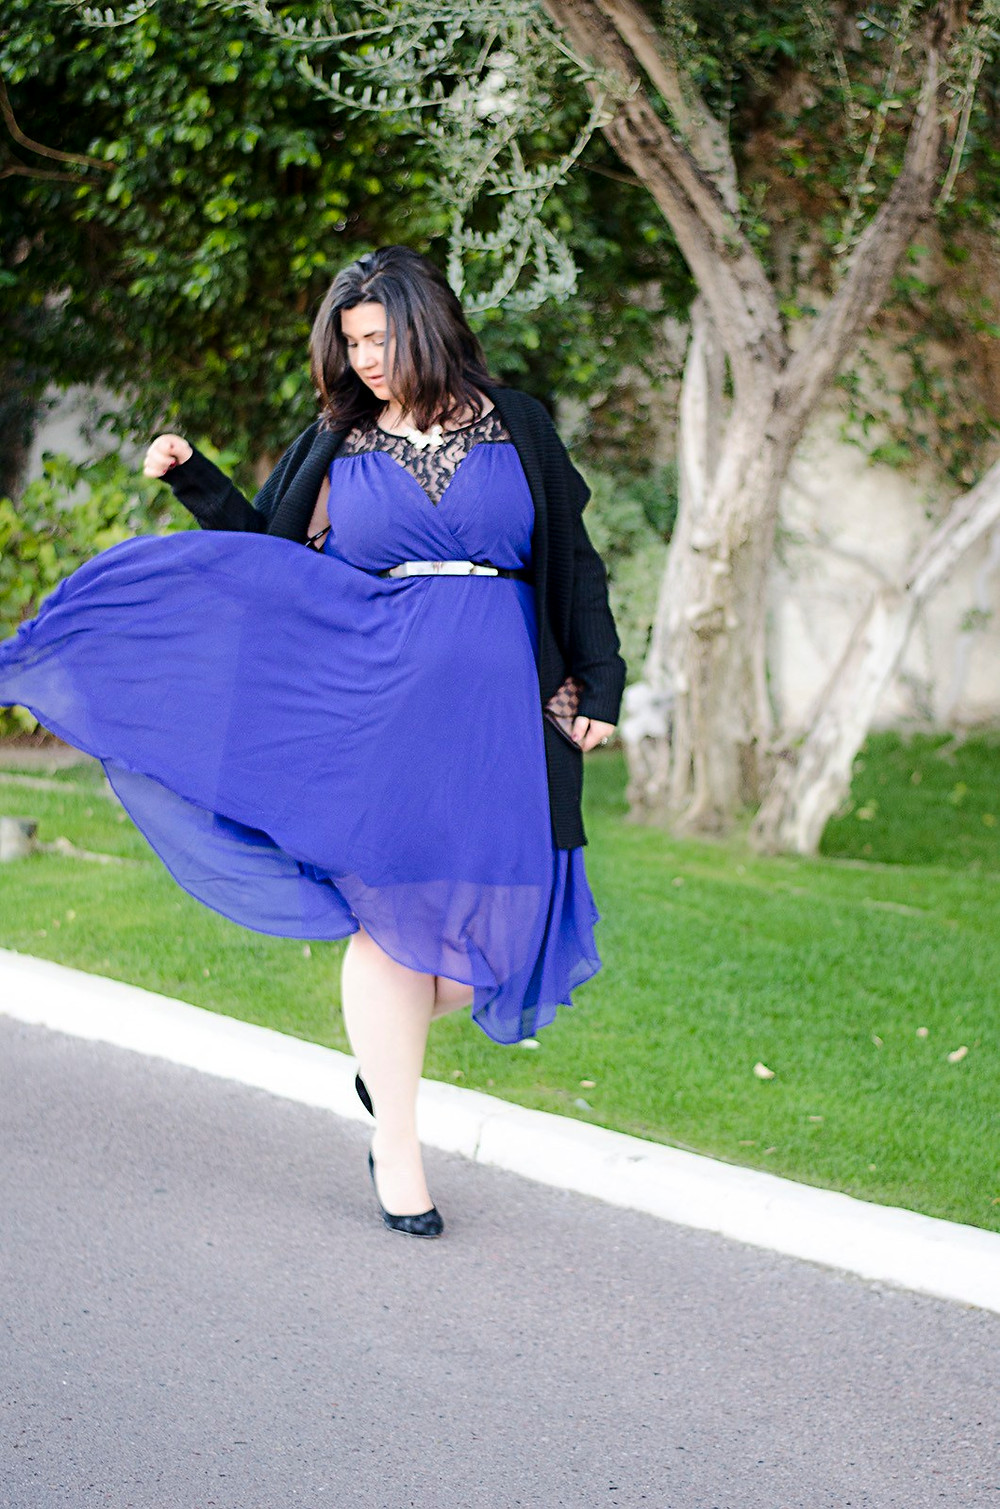 plus size romantic dress ootd crystal coons sometimes glam city chic